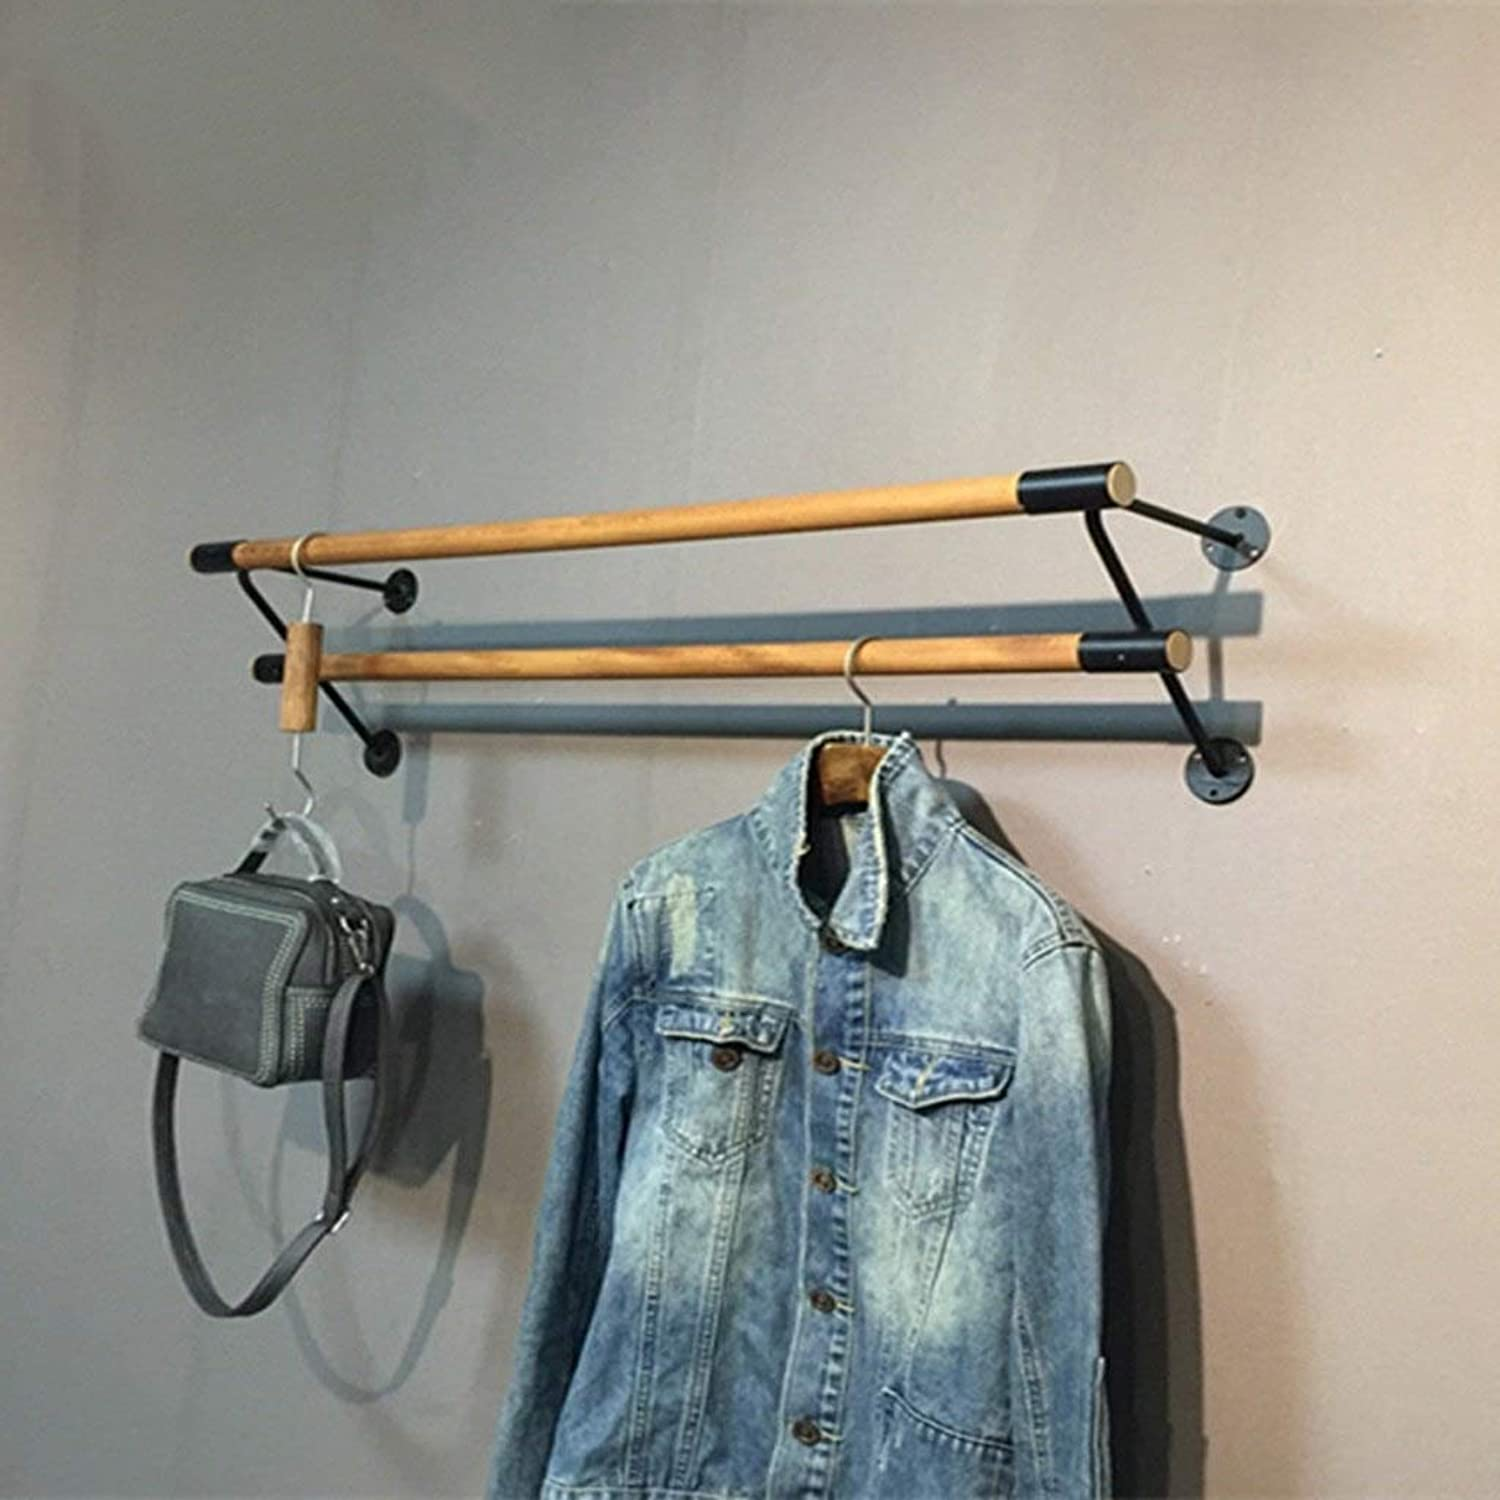 3 Layers Living Room Bedroom Study Room Simple Style Stainless Steel Coat Racks Solid Wood Three Bar Retro Hook Wall Shelf Combination Clothing Rack (Size   60 cm)